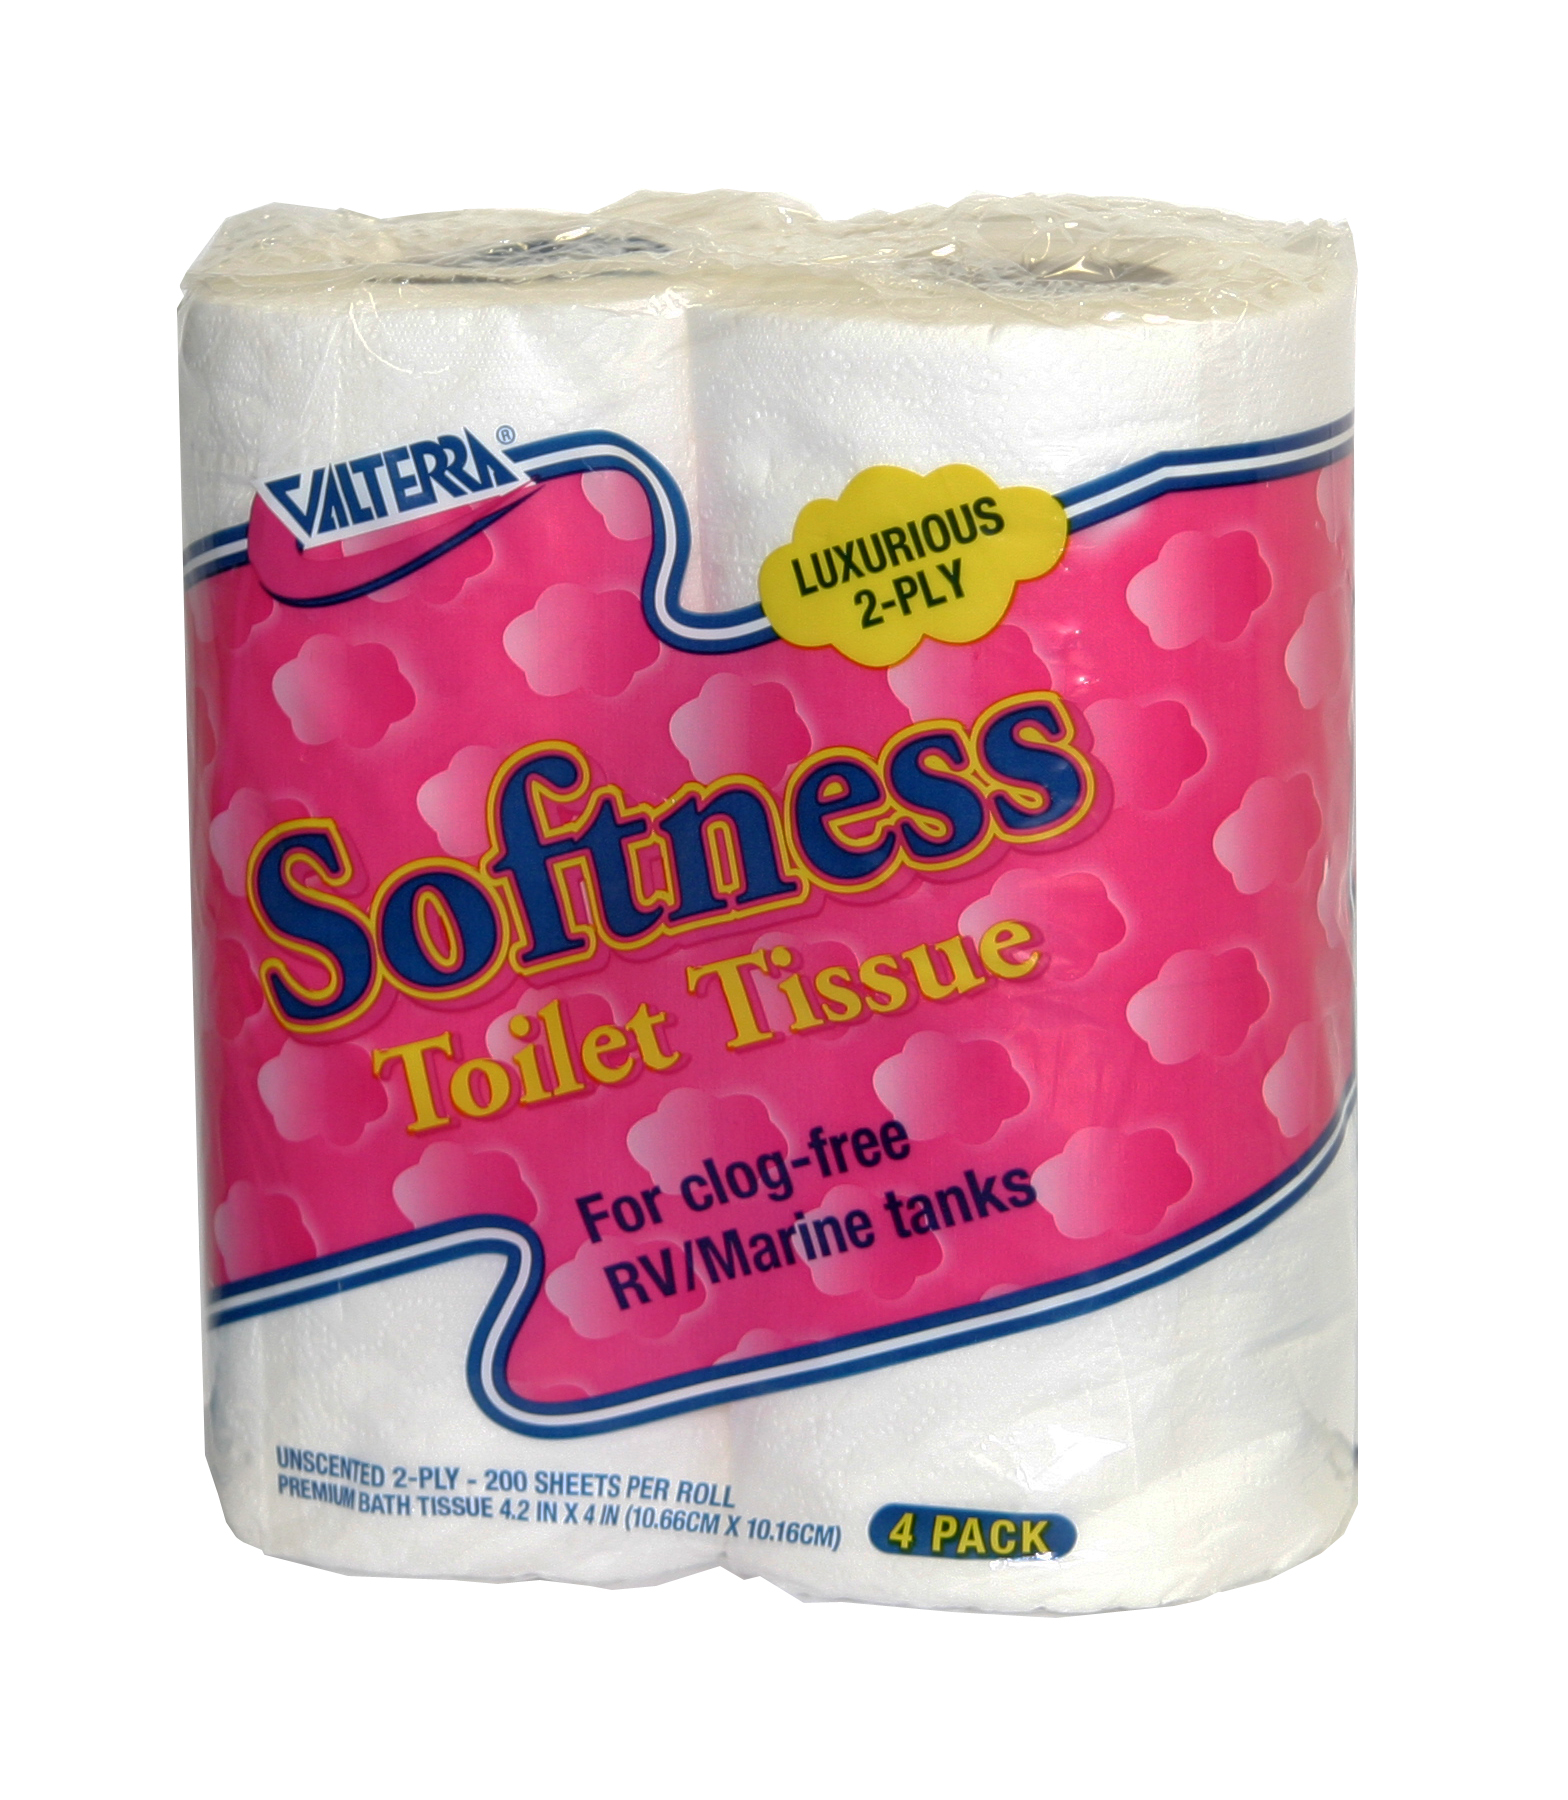 Q23630 Valterra Toilet Tissue Softness 2 Ply 4 Roll Pack